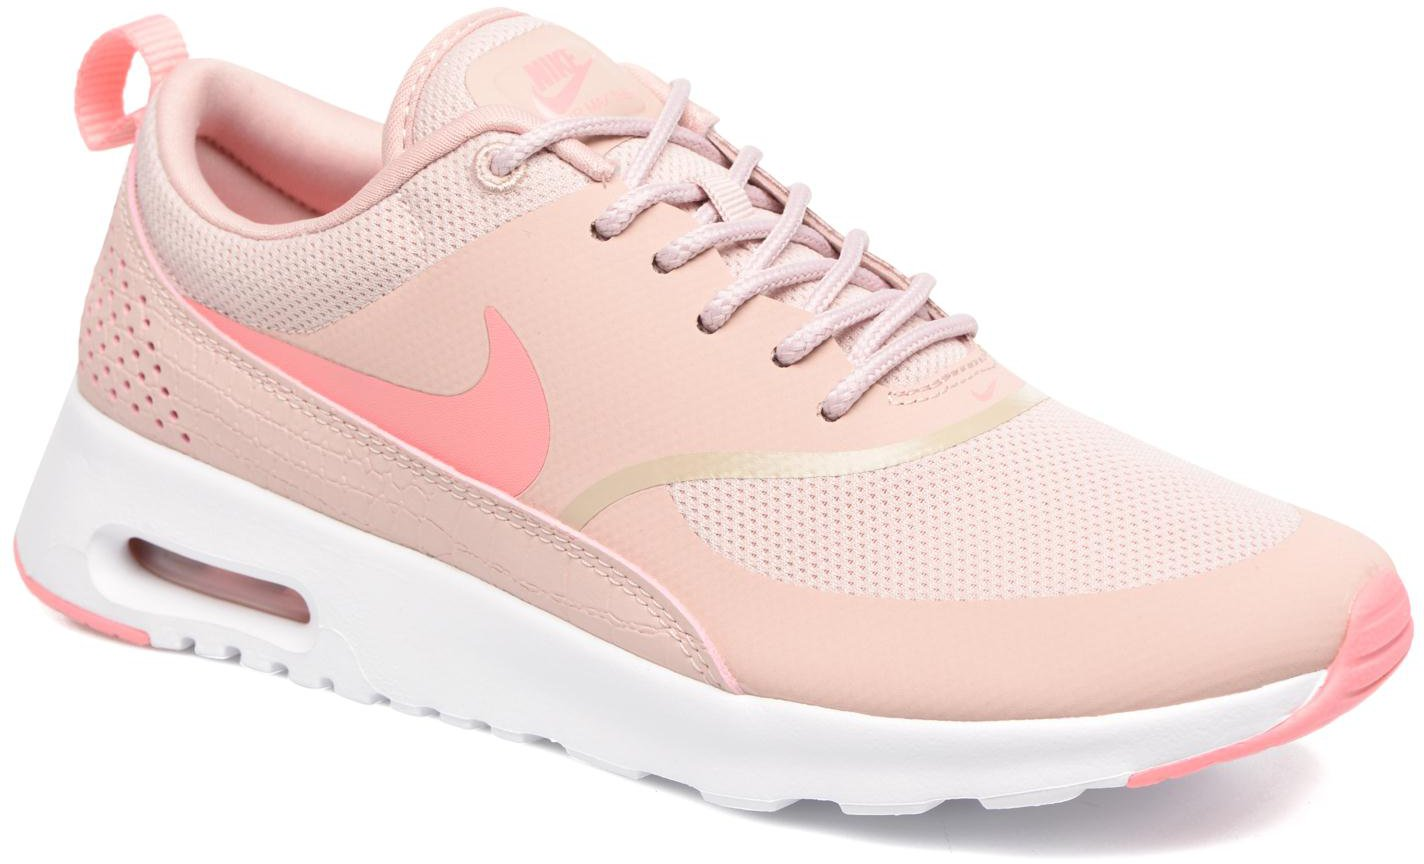 Nike Air Max Thea pink oxford/bright melon/white